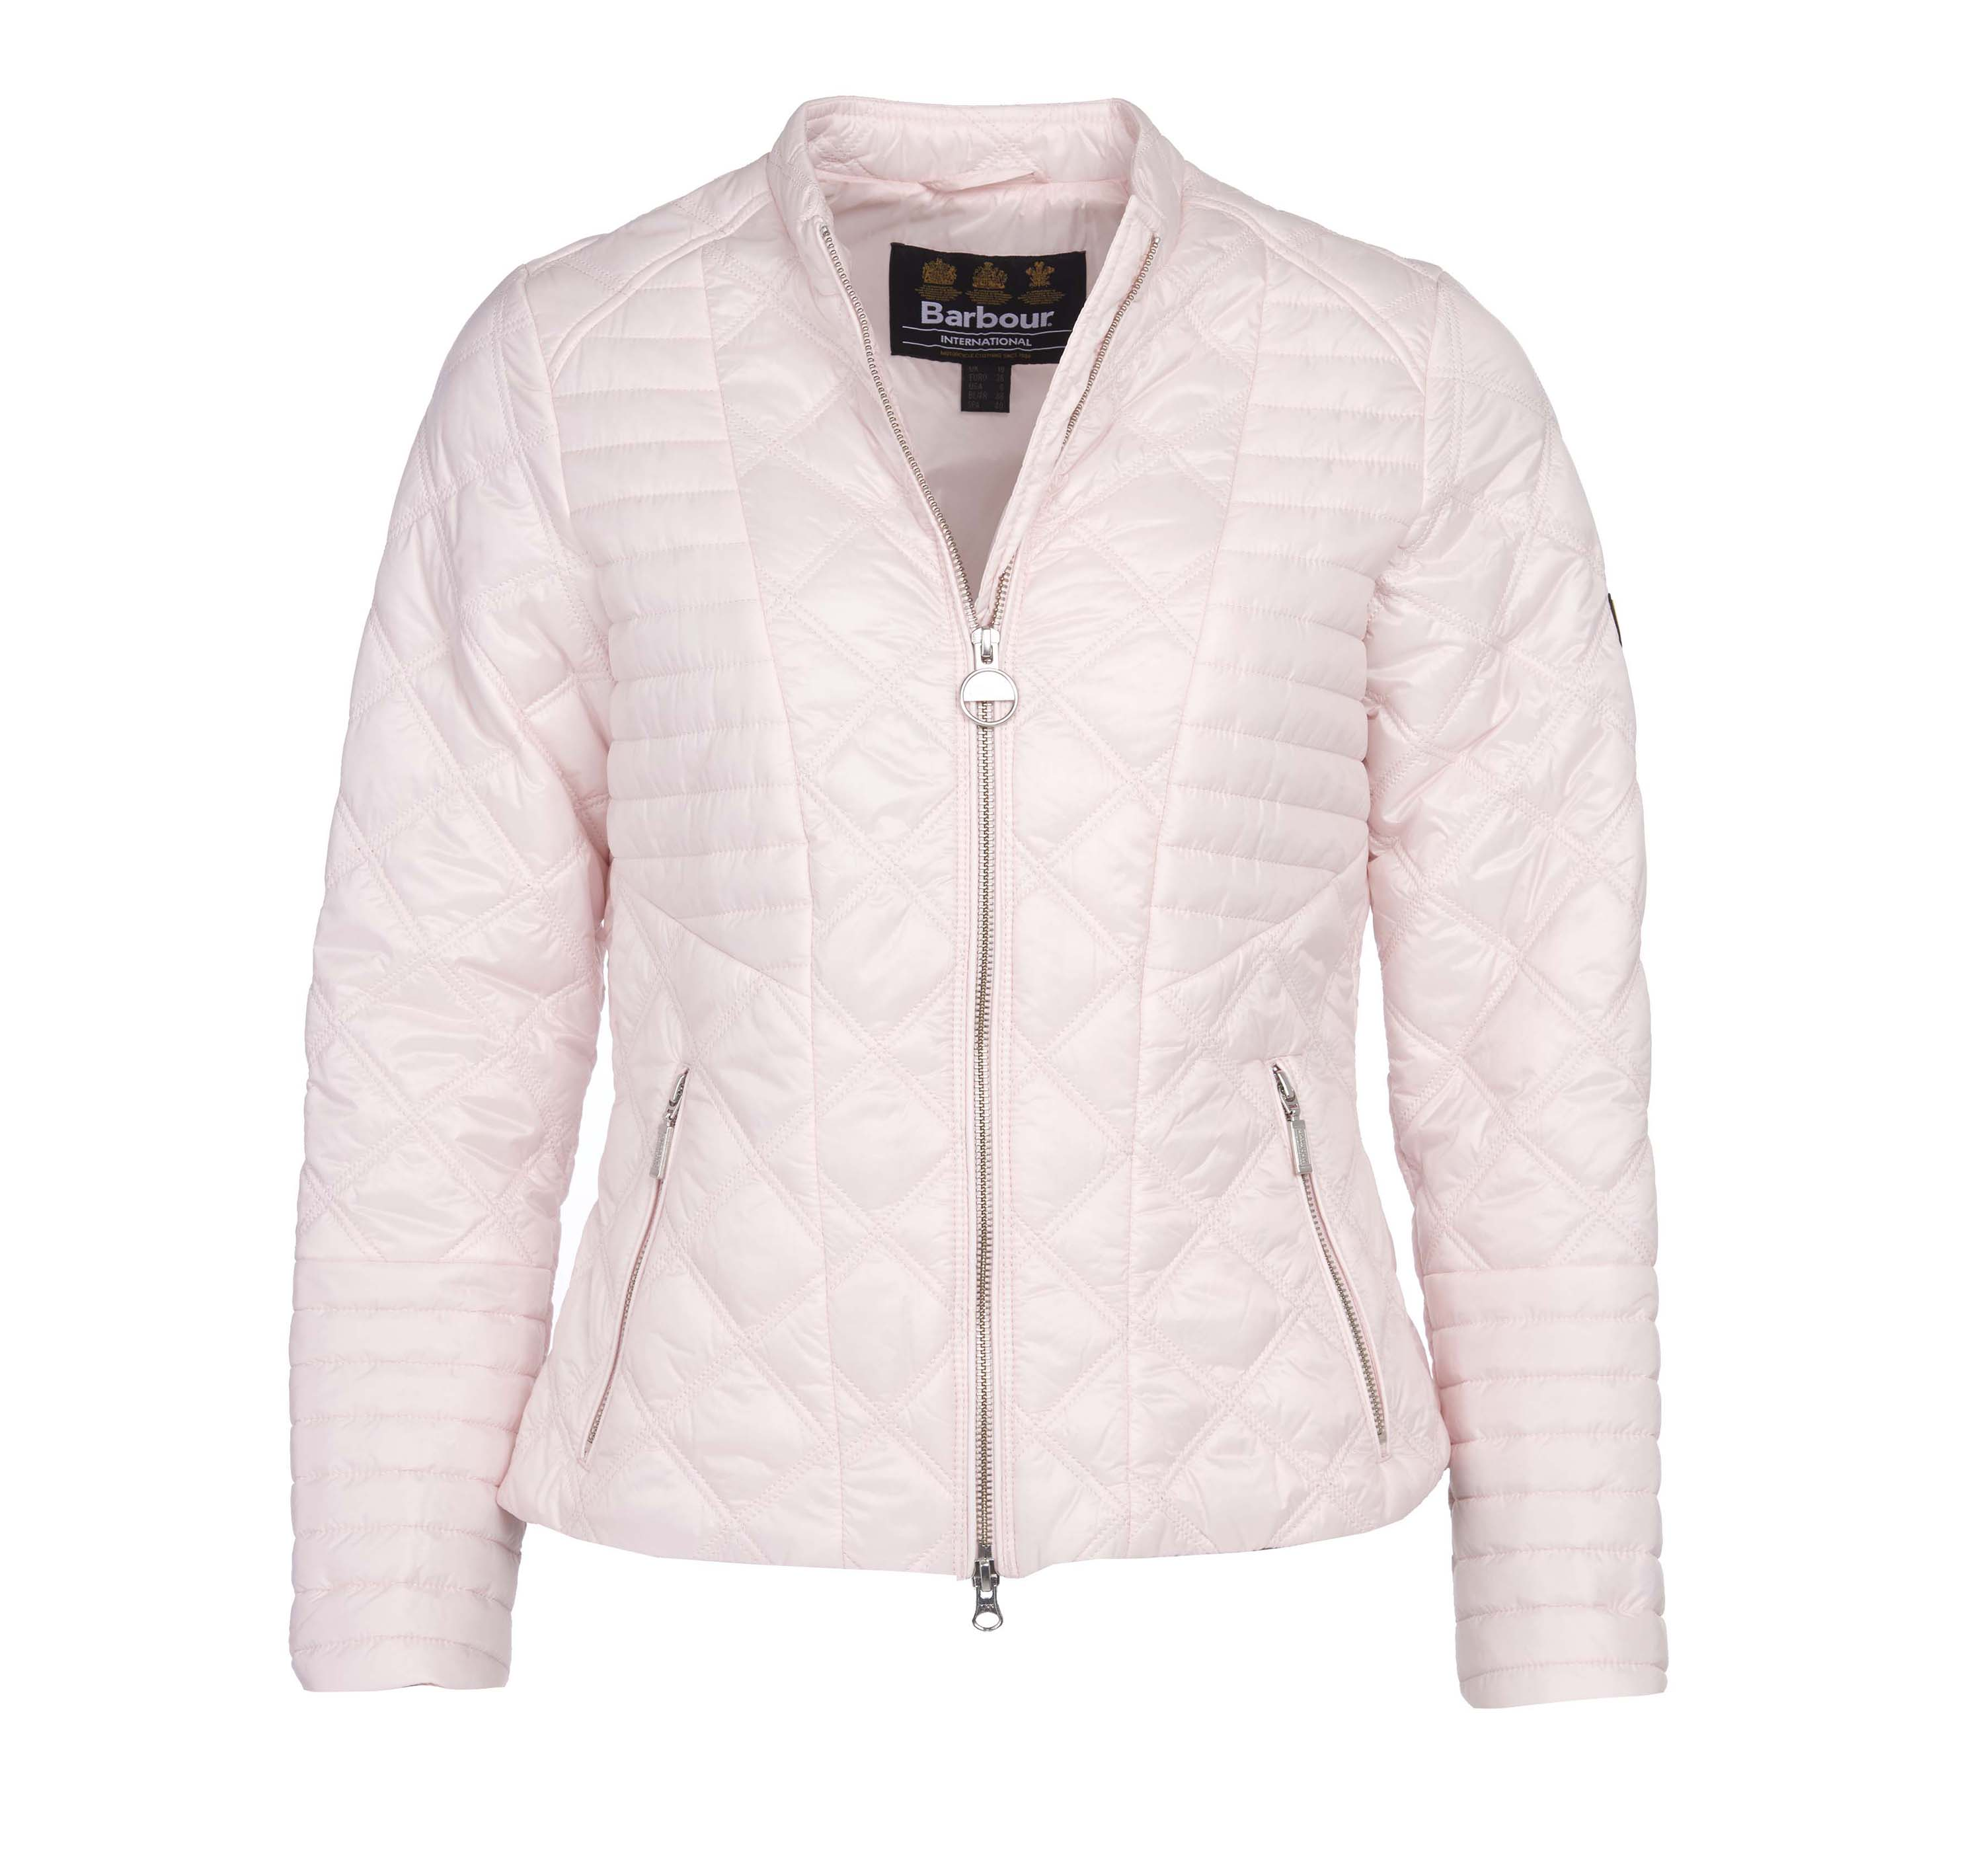 Barbour Intl. Freethrow Quilted Jacket Pink Barbour International: Slim Fit